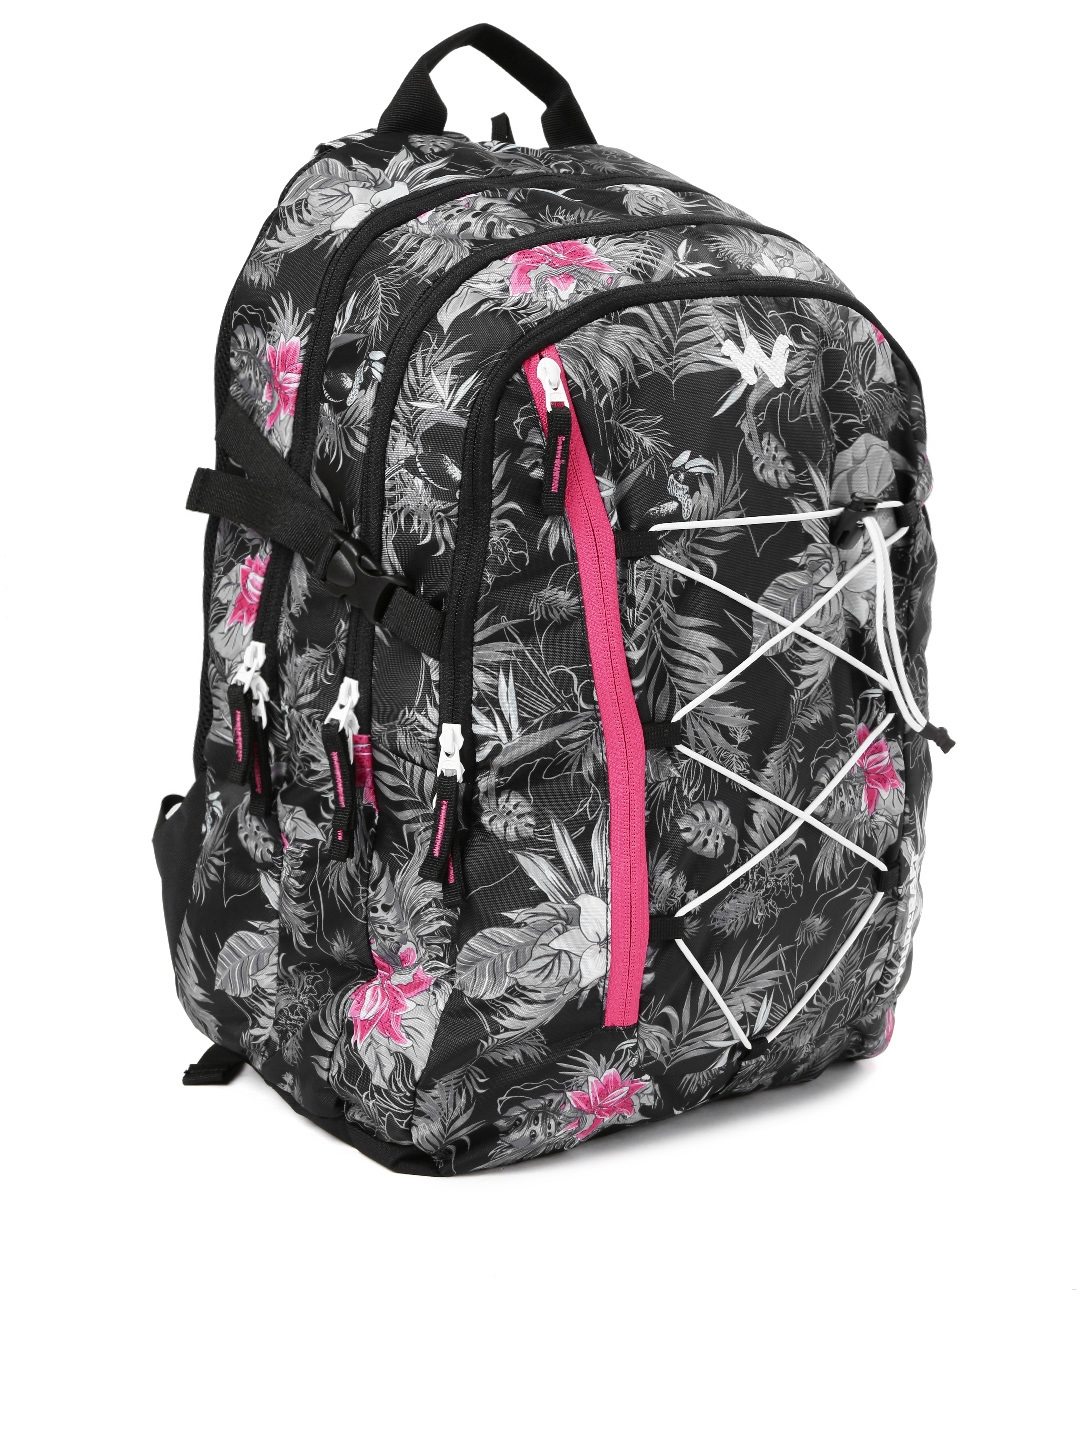 Wildcraft Unisex Charcoal Grey   Black Printed WC 6 Flora 4 Backpack 98cc5e75634c4